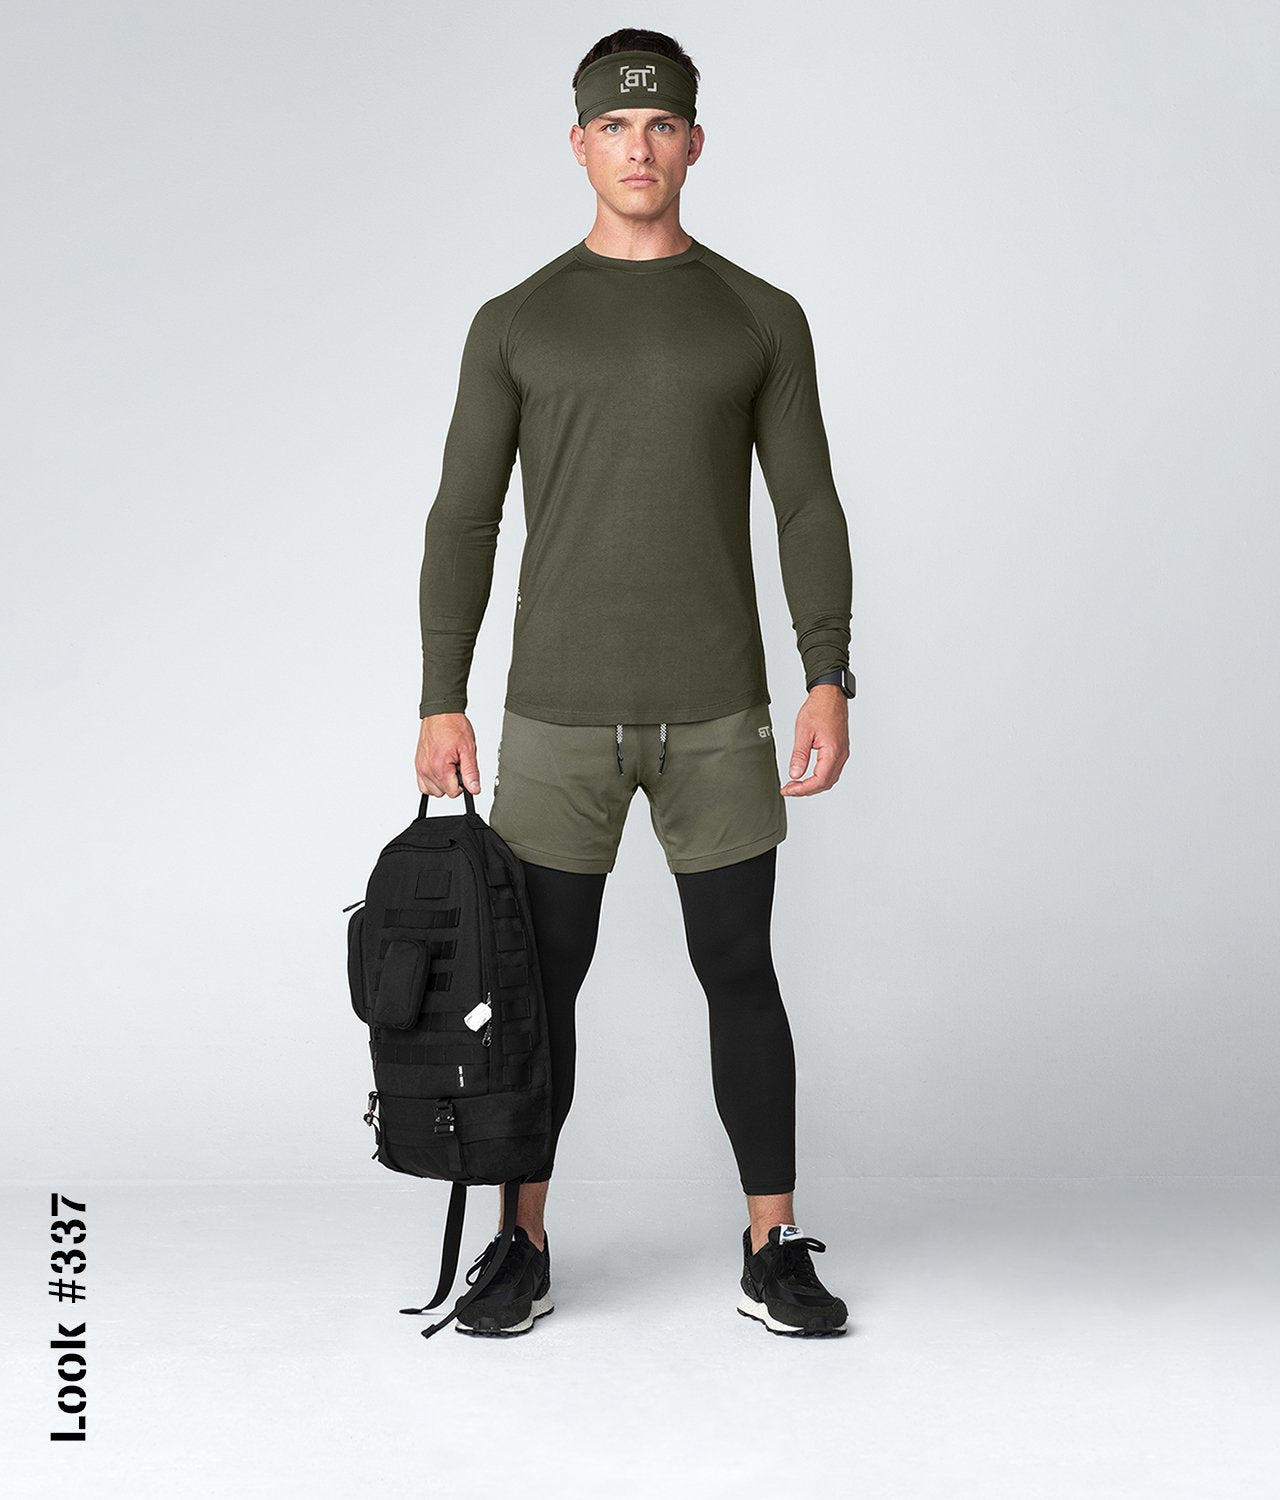 Born Tough United Kingdom Core Fit Softest Viscose Army Green Long Sleeve Gym Workout Shirt For Men